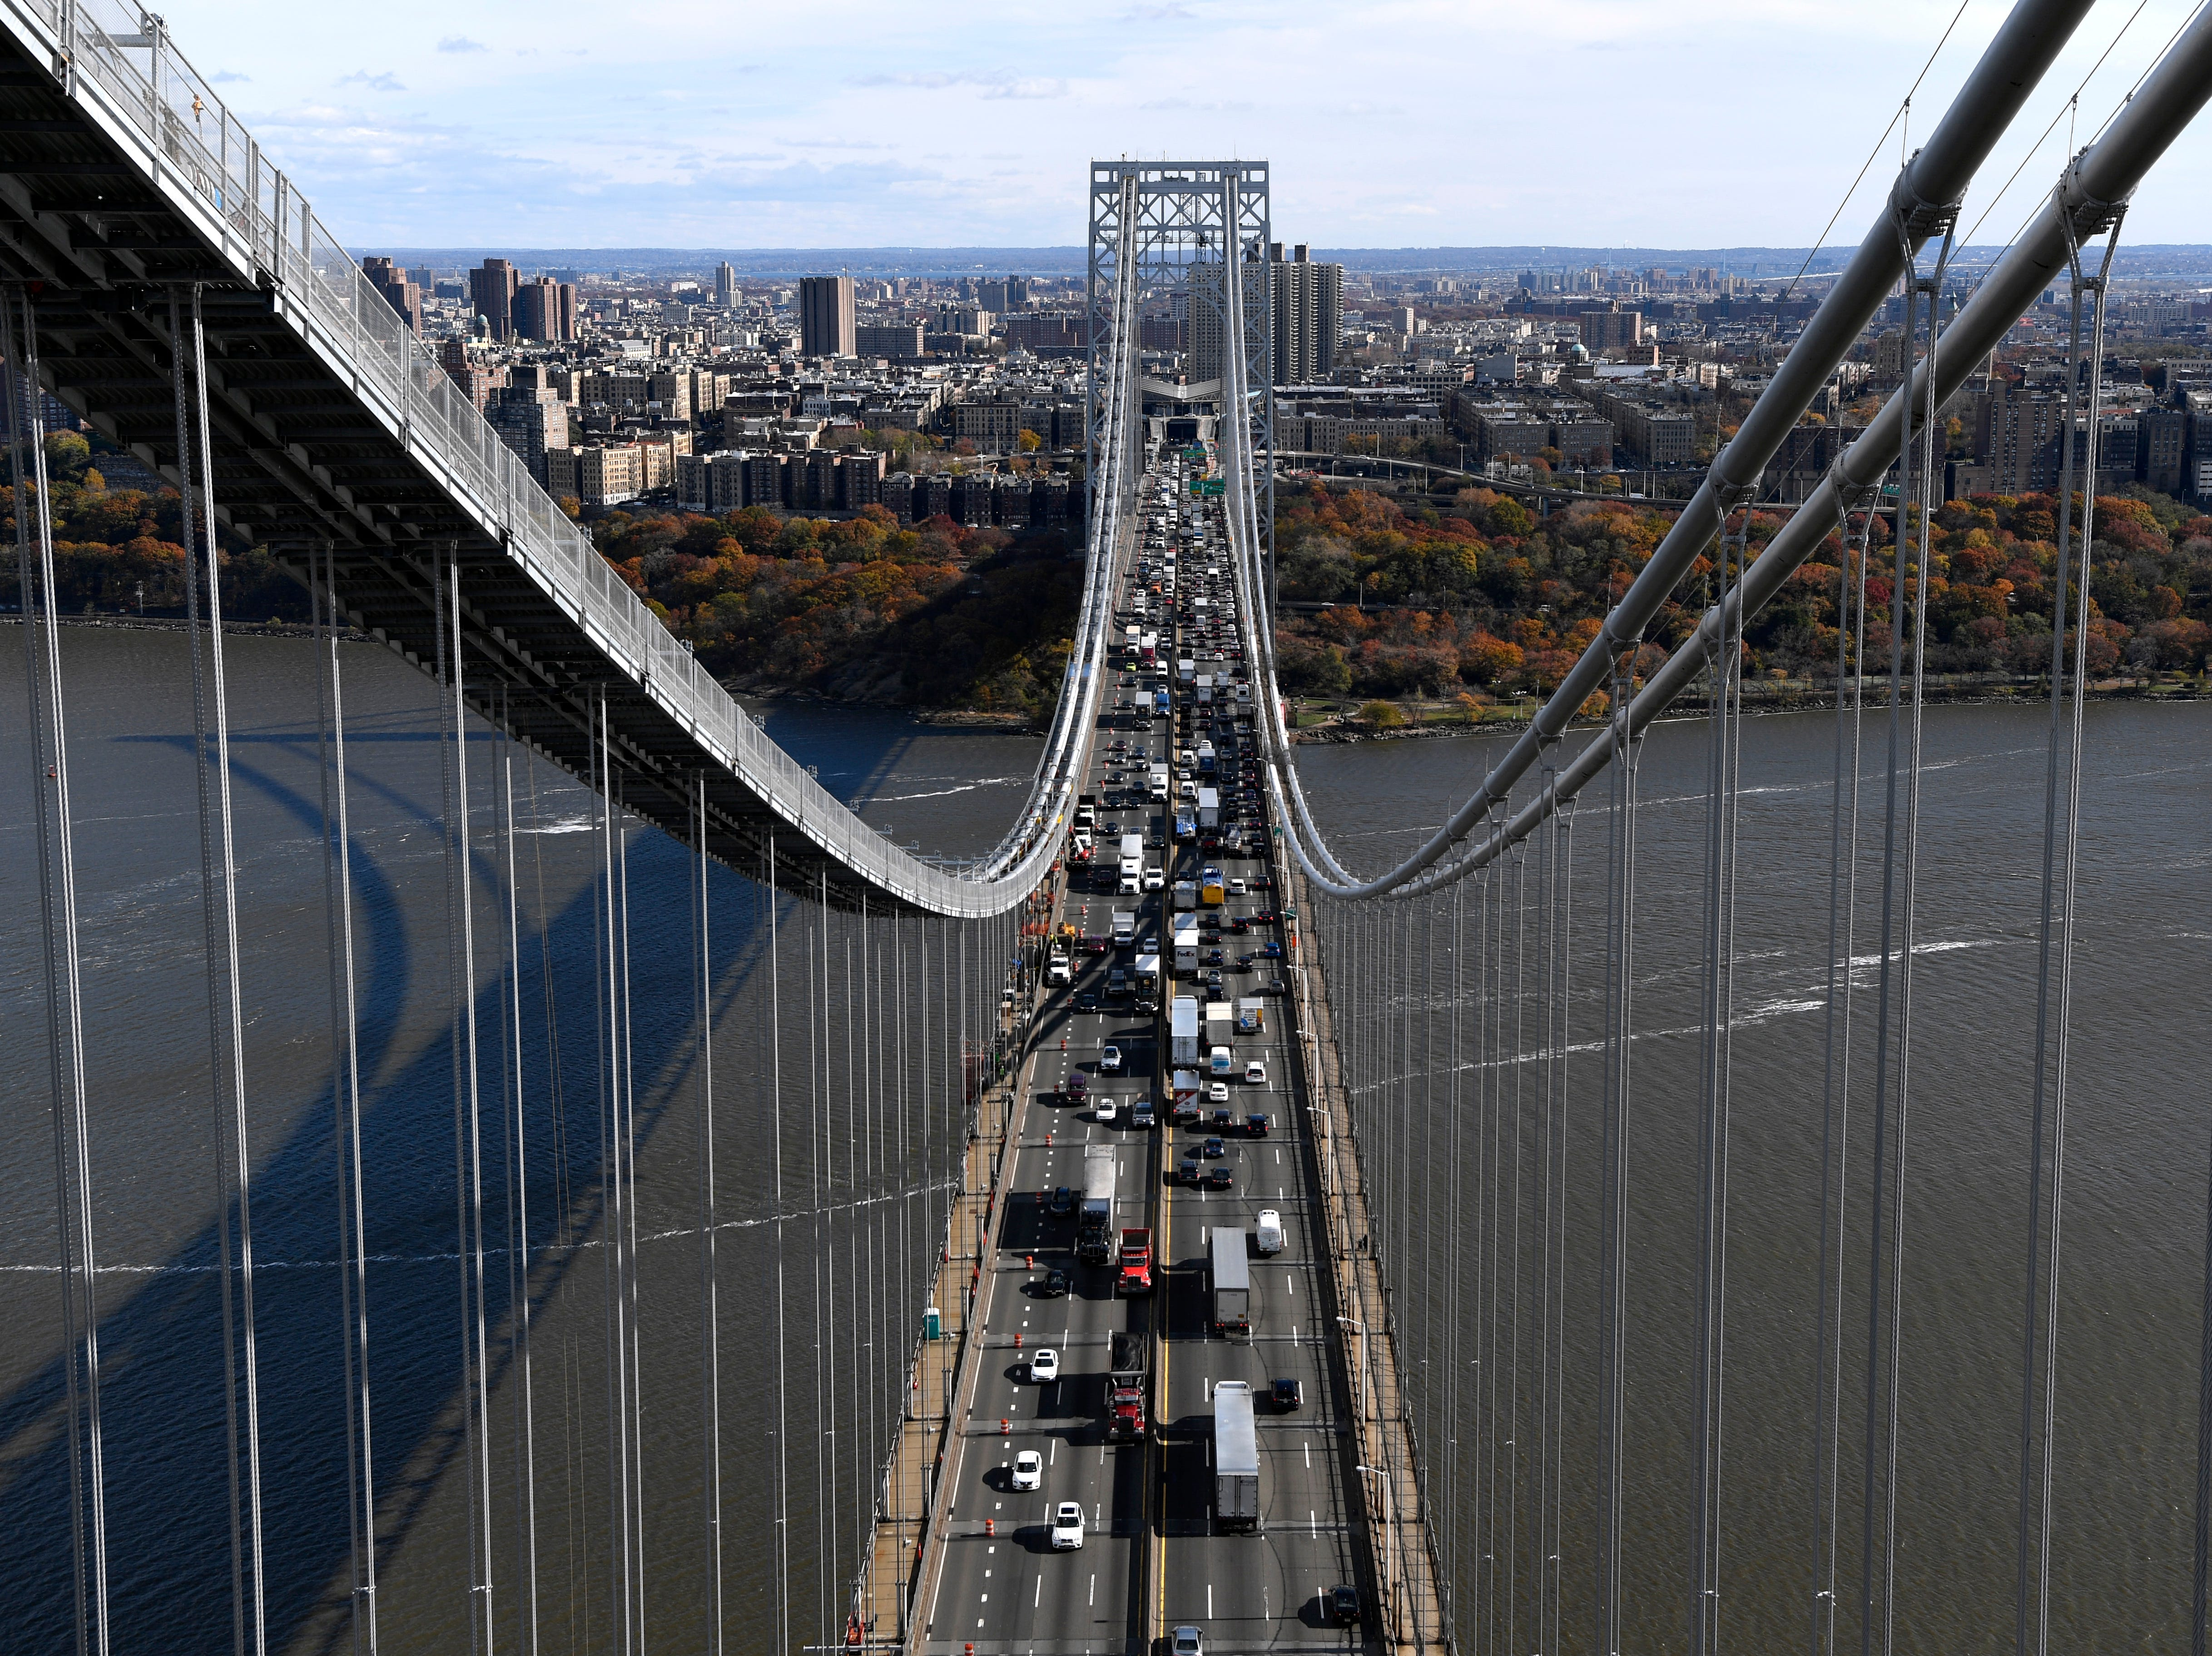 The George Washington Bridge is undergoing a suspender rope replacement and main cable rehabilitation, which the Port Authority estimates will take six to seven years. The bridge is seen looking towards New York during a tour on Wednesday, Nov. 14, 2018, in Fort Lee.